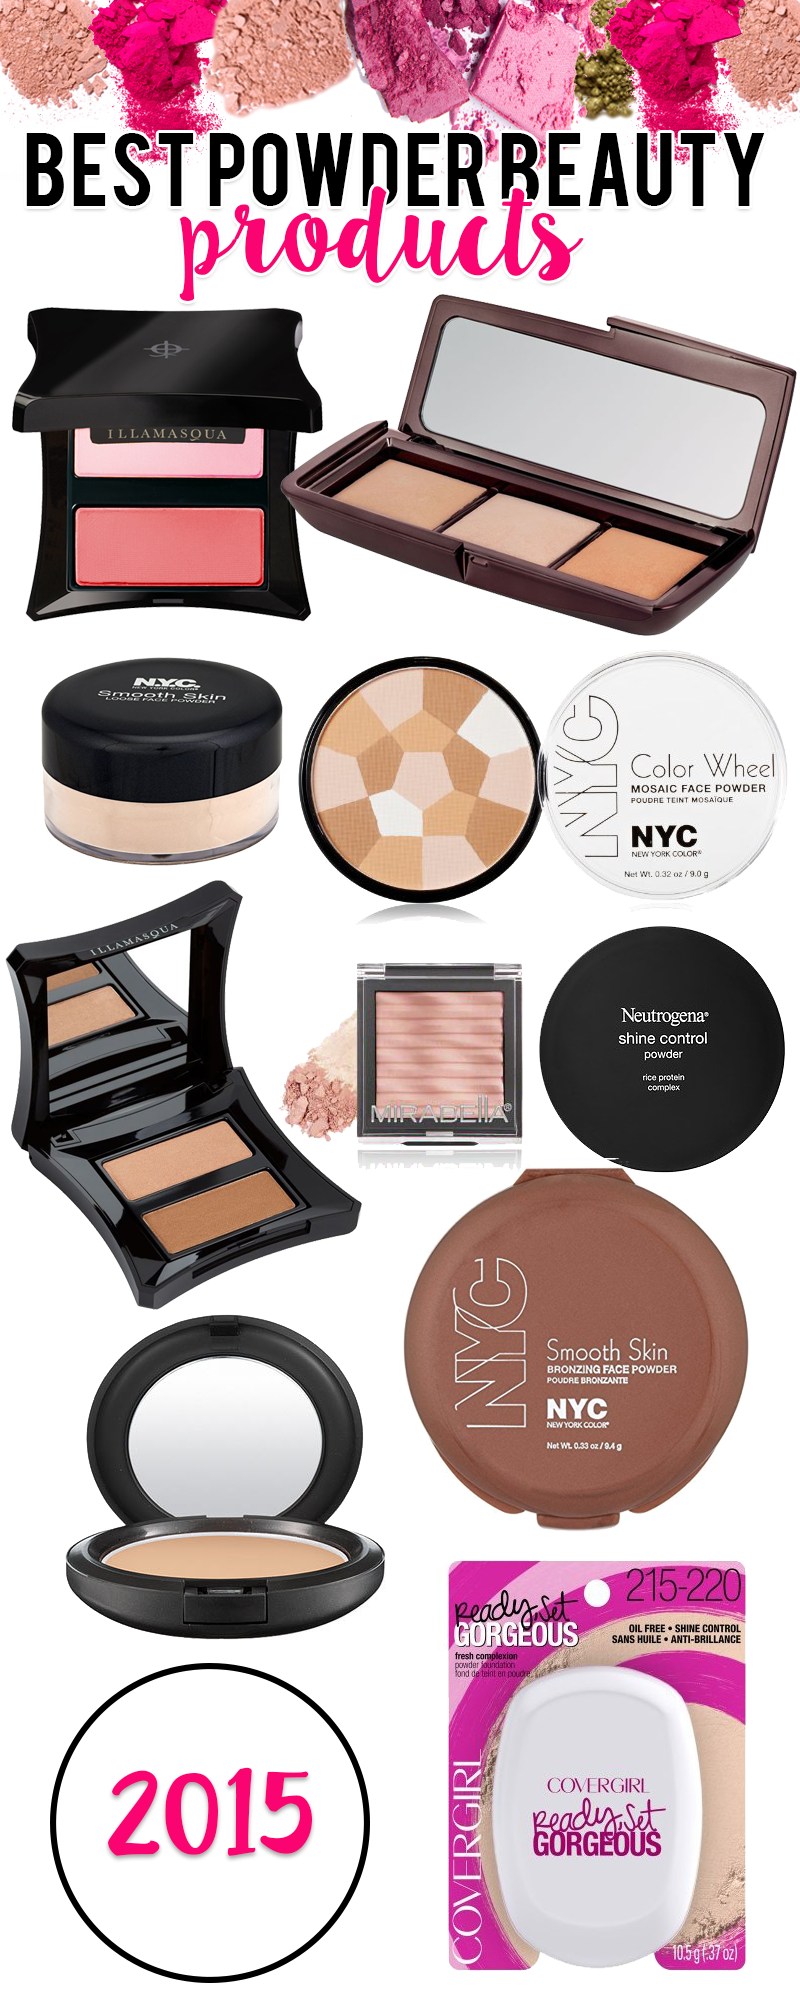 The Best Powder Beauty Products